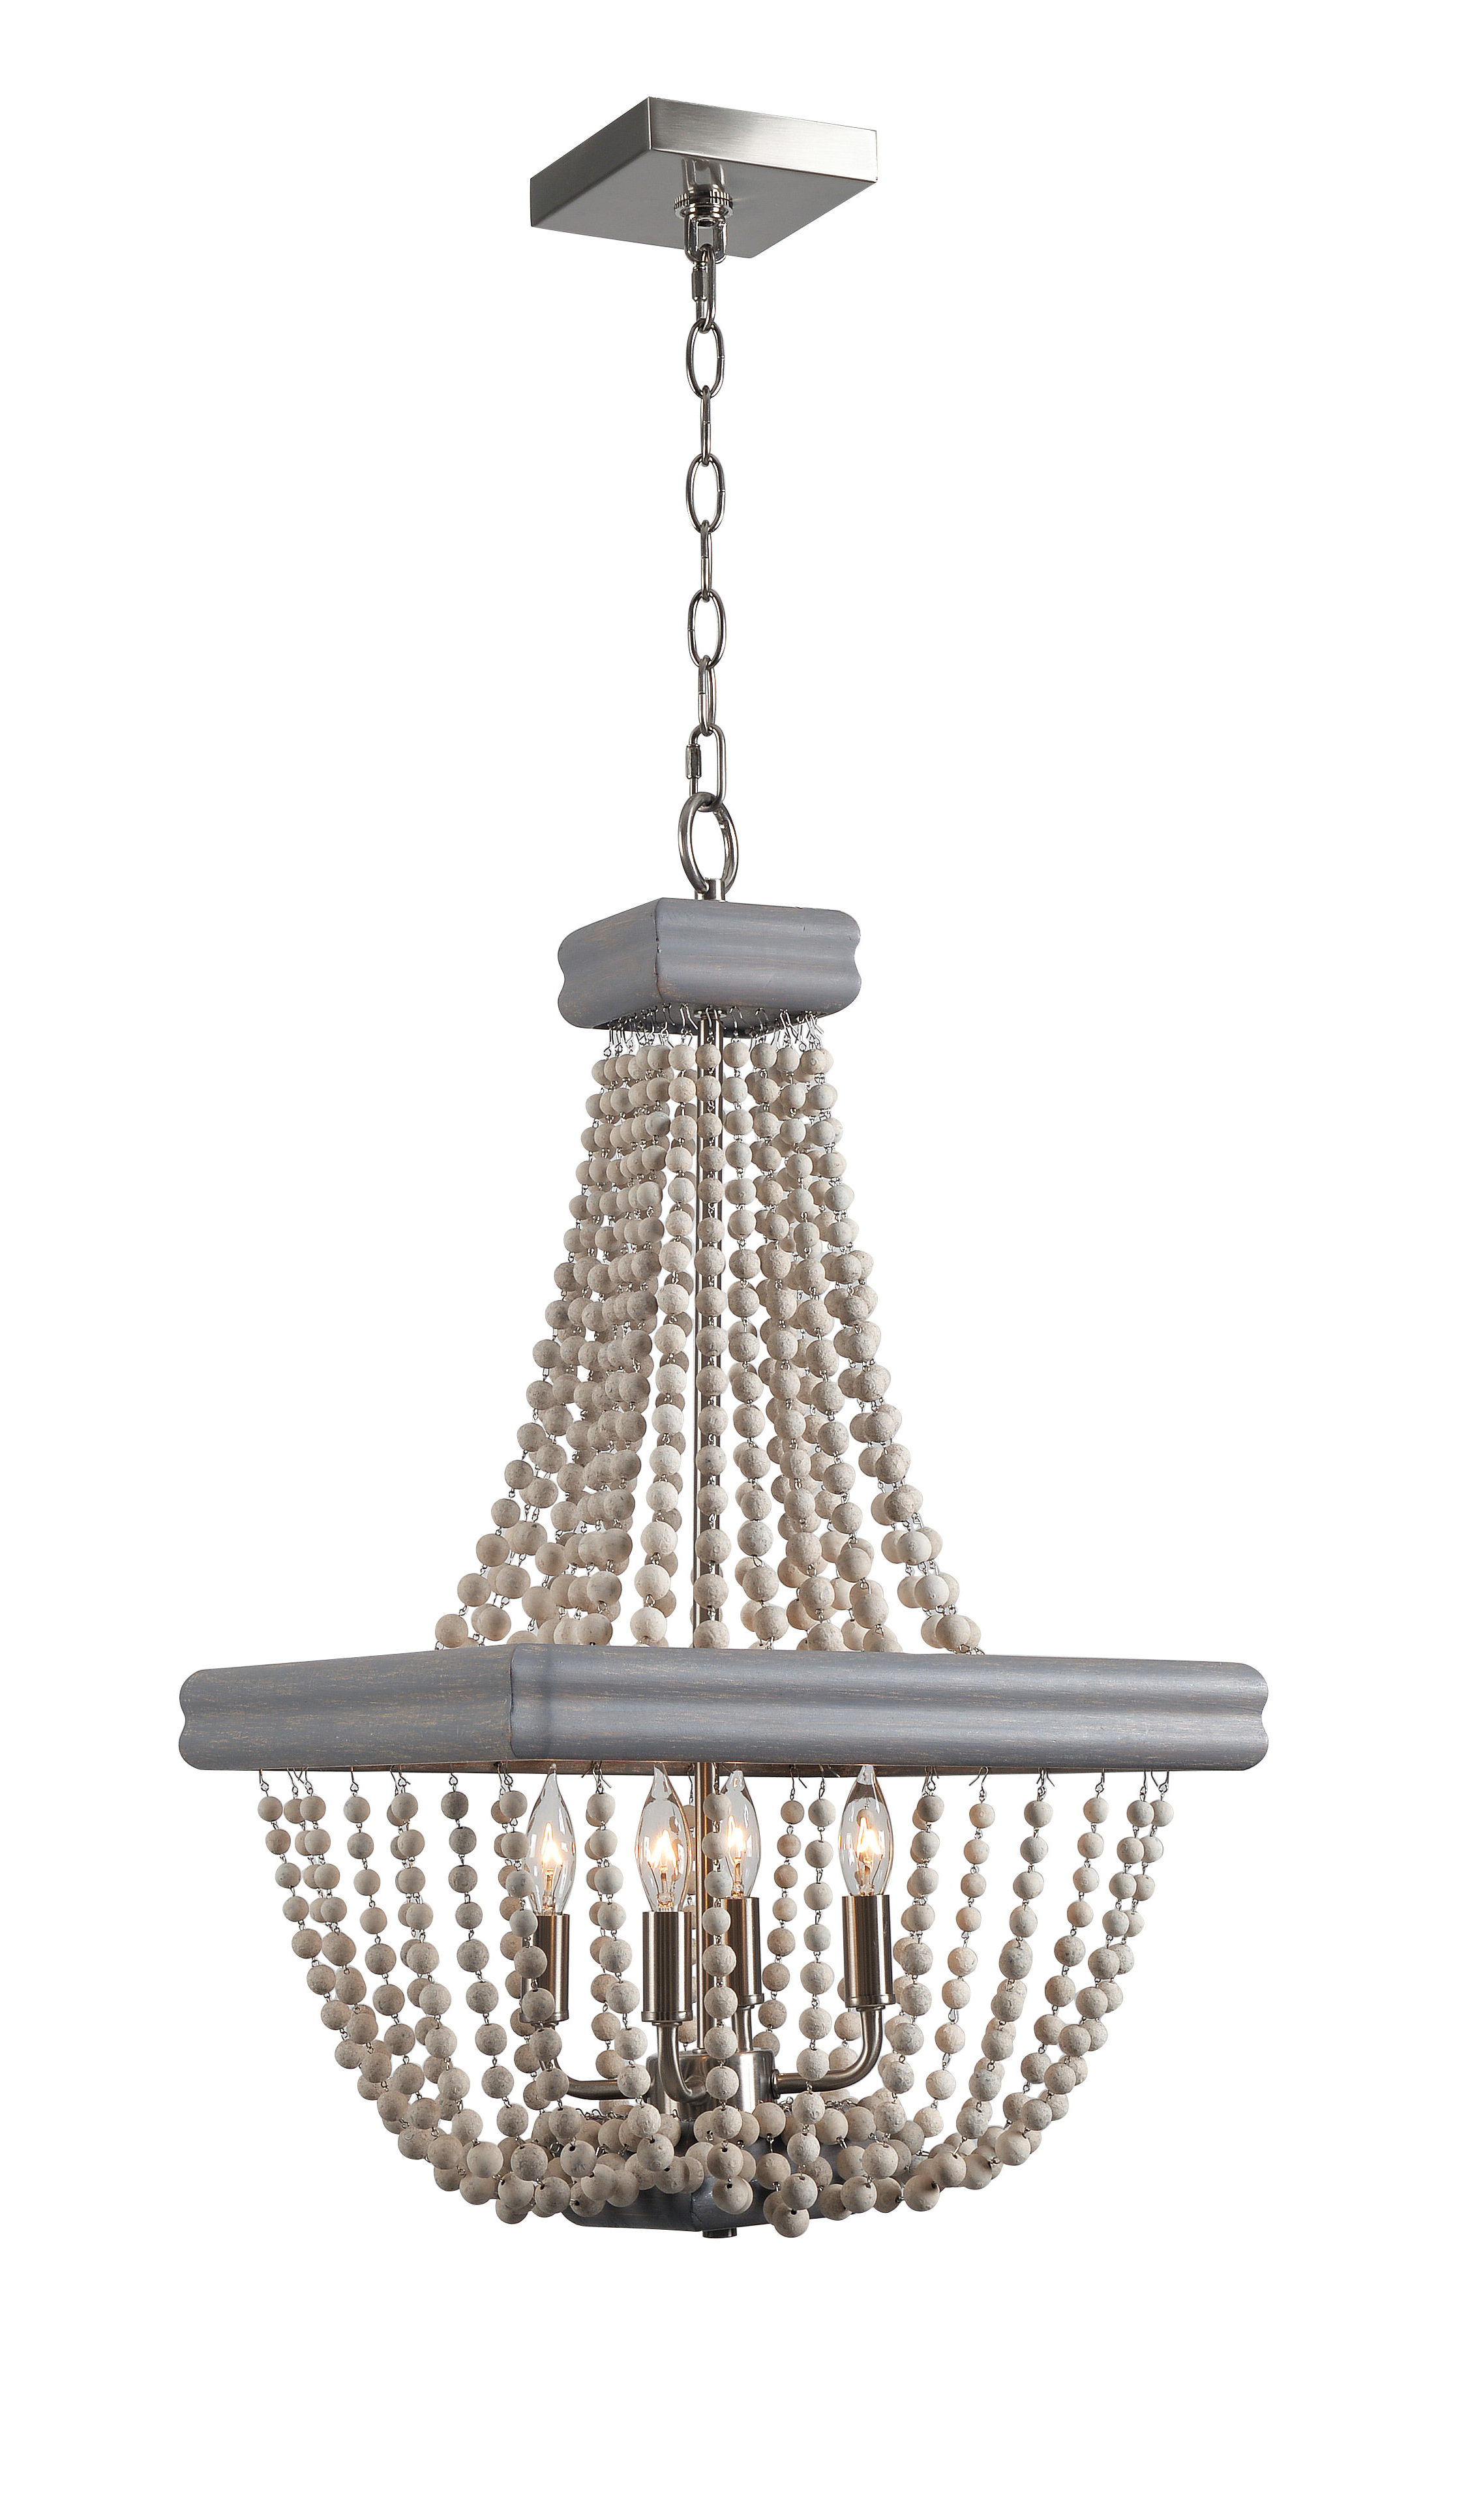 4 Light Empire Chandelier With Regard To Best And Newest Hatfield 3 Light Novelty Chandeliers (Gallery 17 of 20)